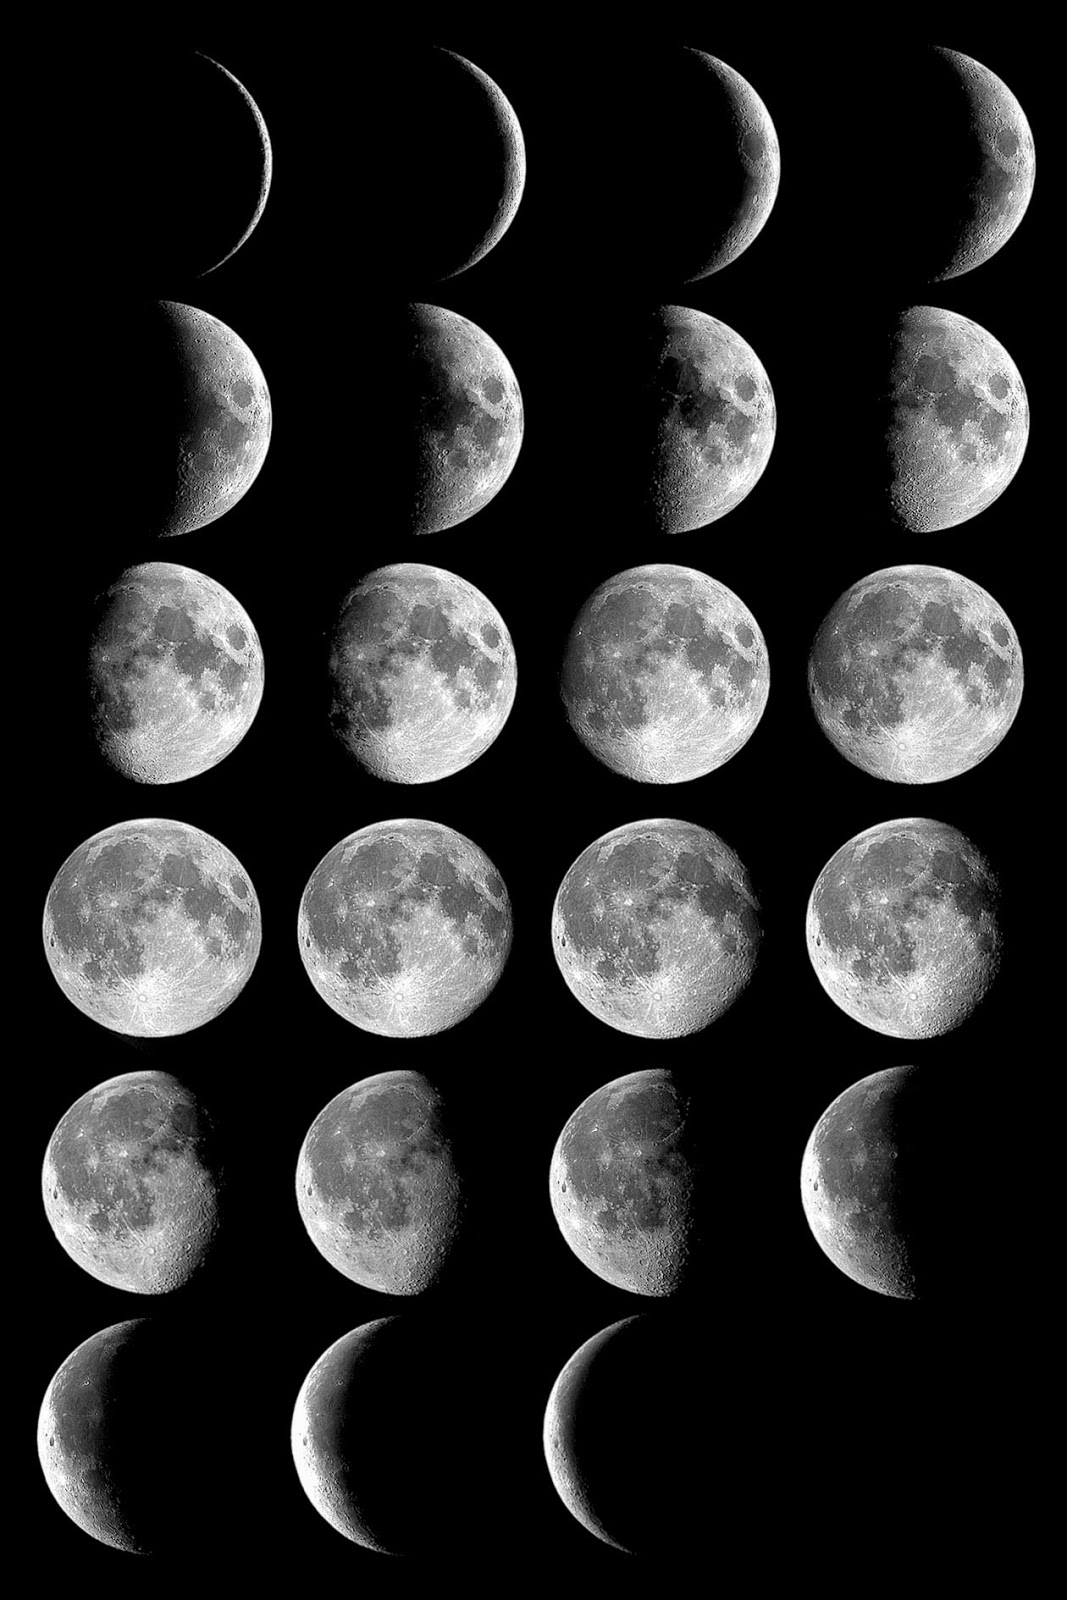 moon phases around the earth - photo #37